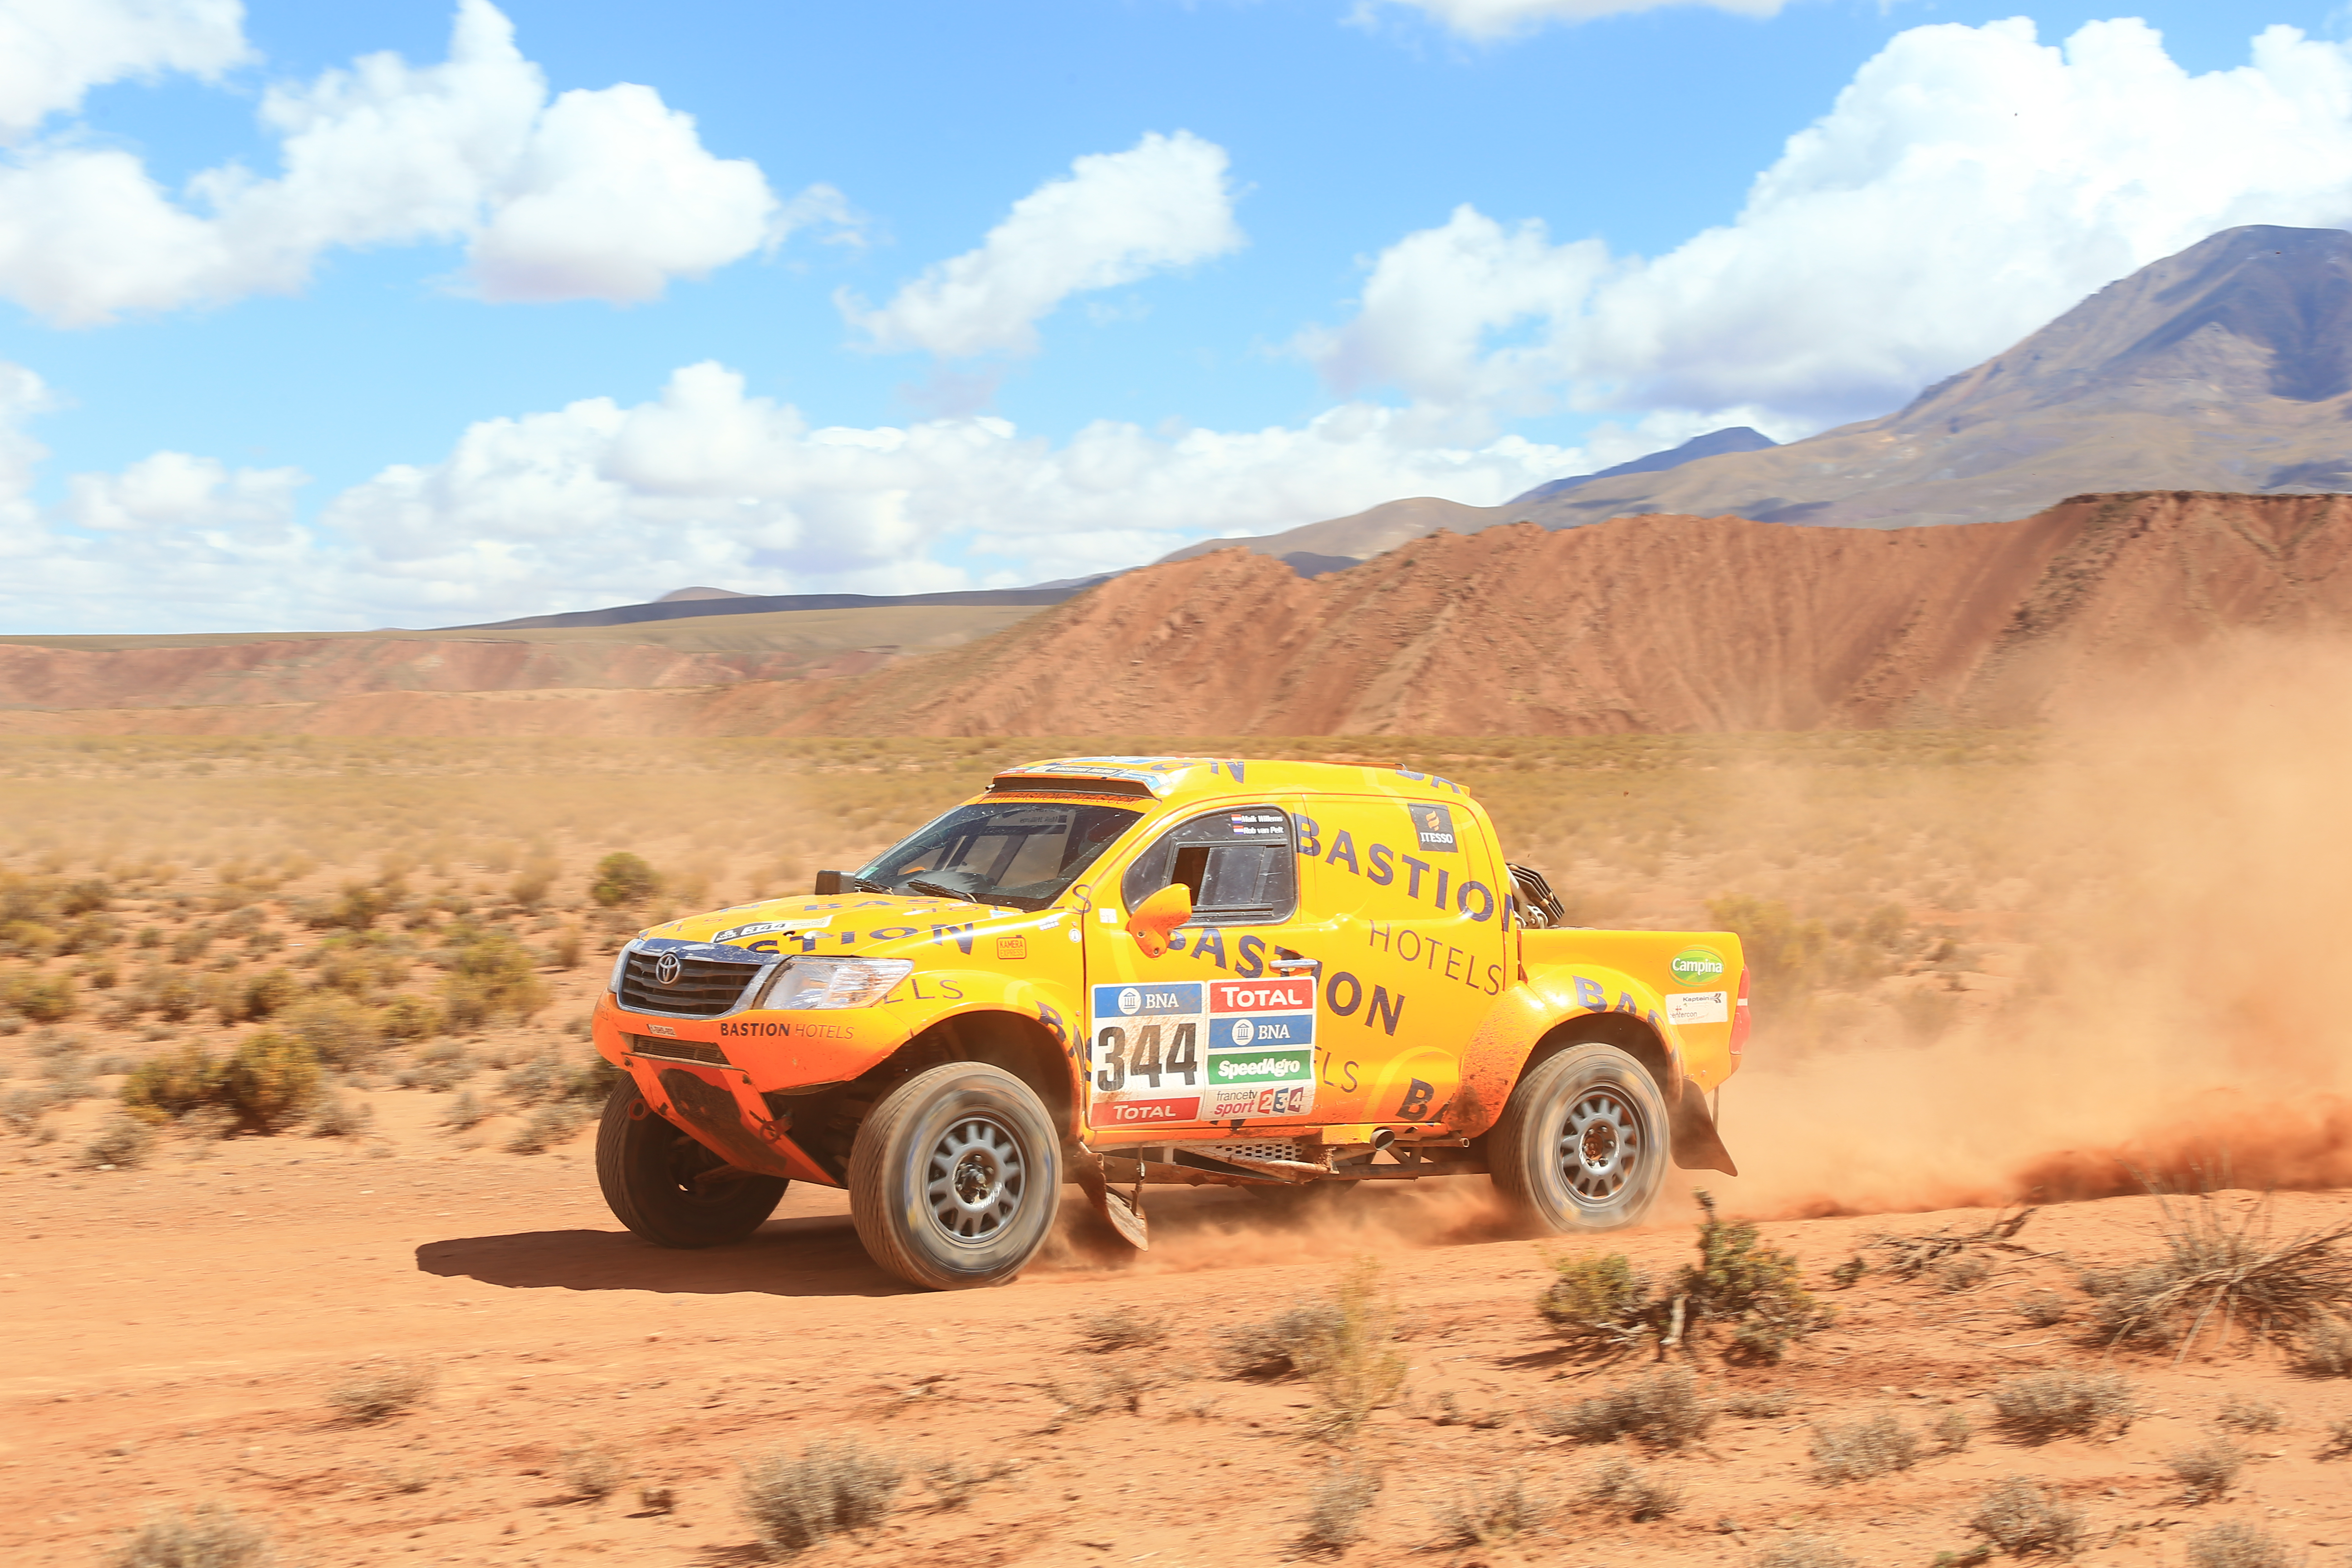 Dakar Rally Bastion Hotels 2016